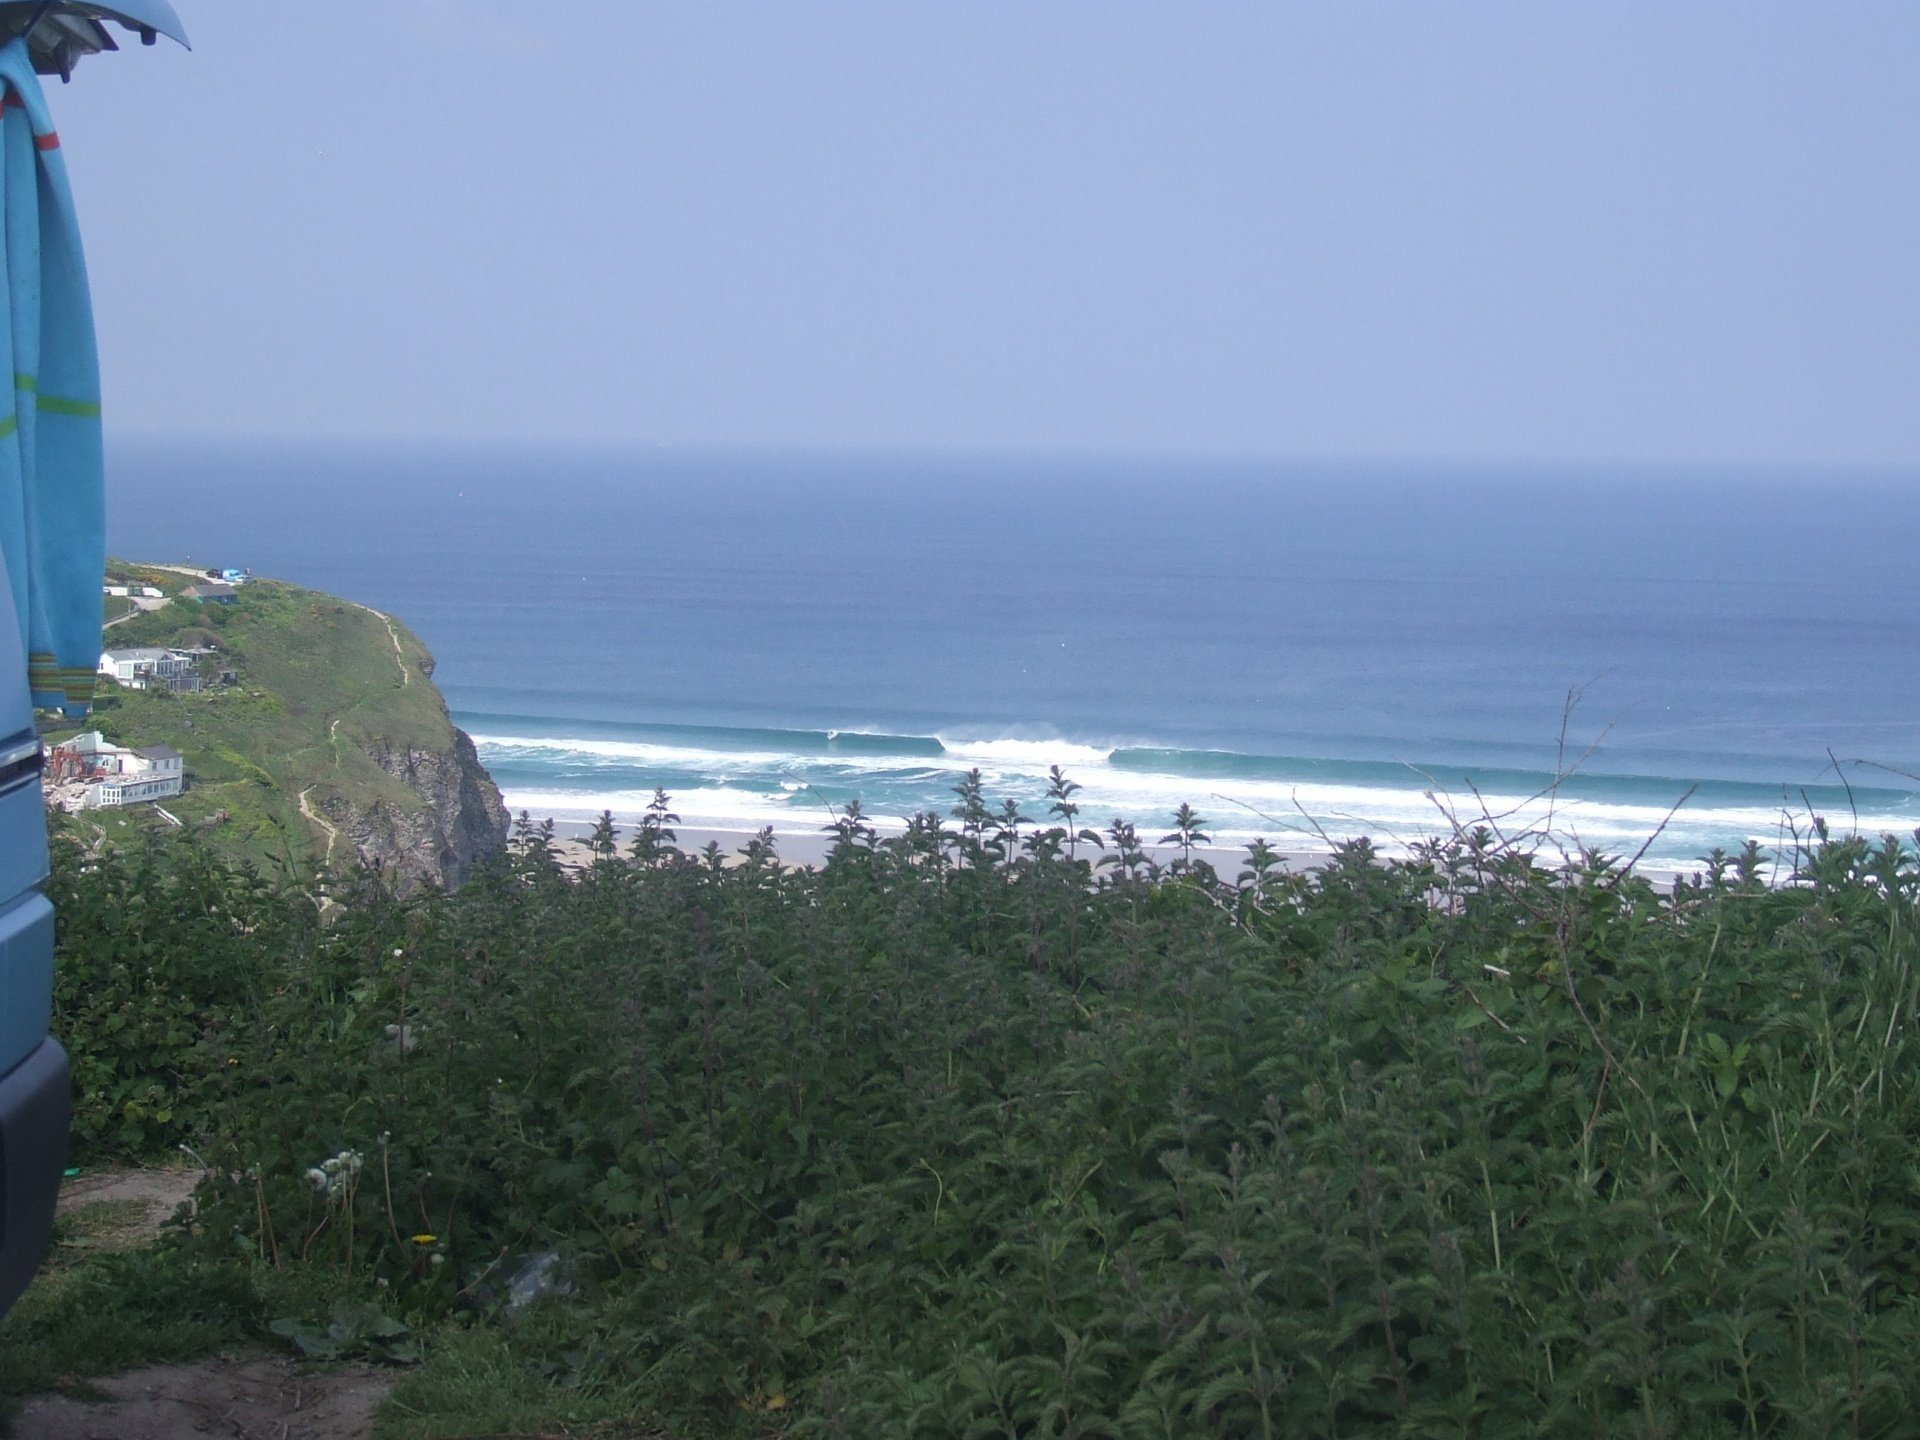 LeePerry's photo of Porthtowan